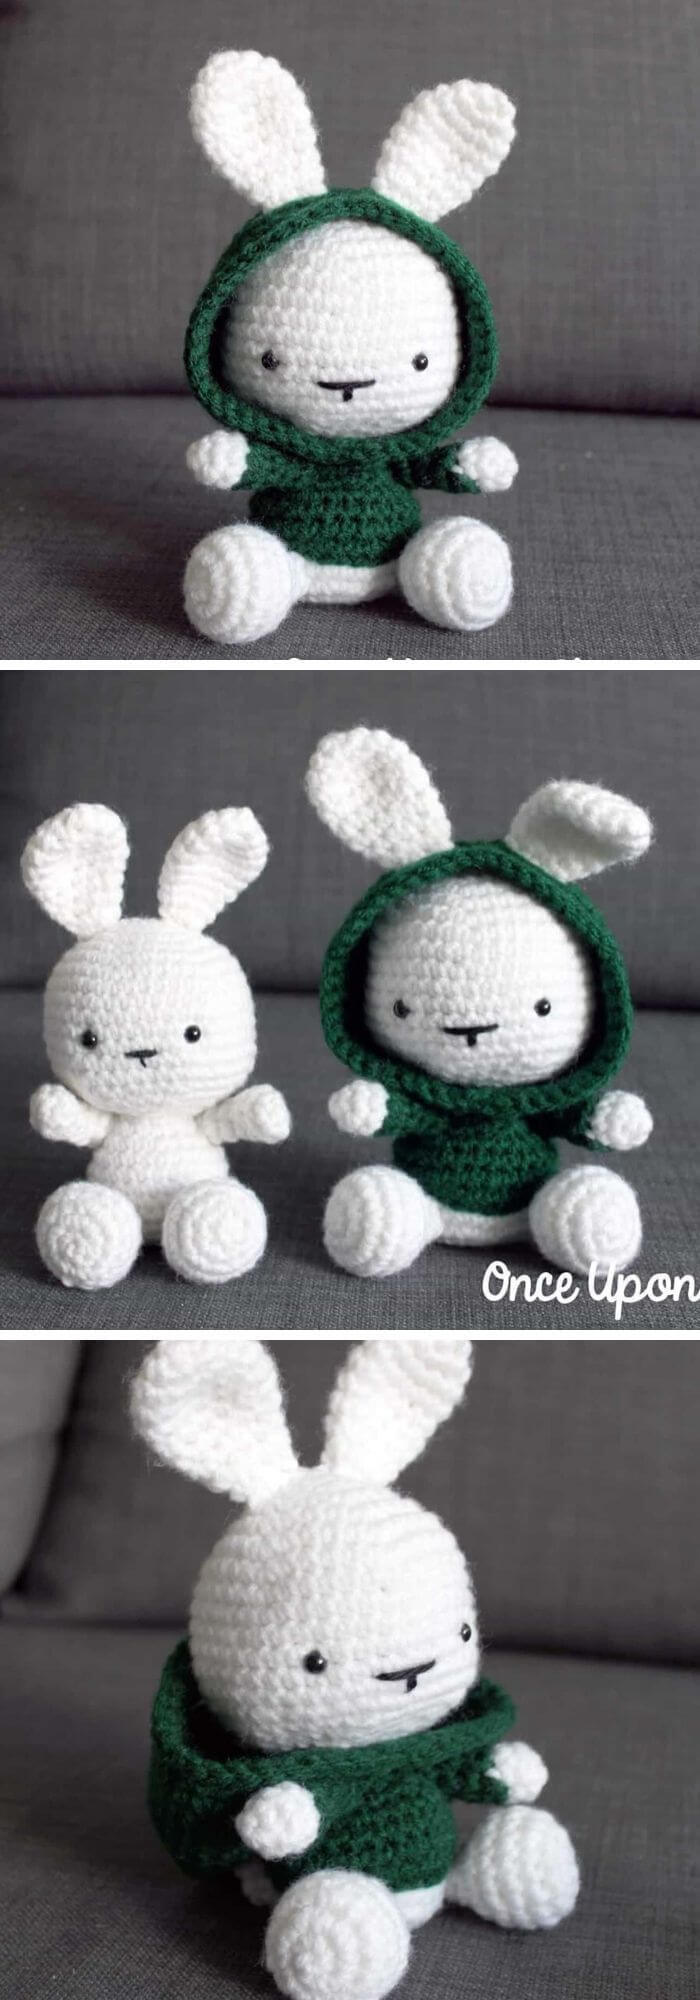 Crochet Amigurumi Bunny Toy Free Patterns Instructions | Easter ... | 2000x700